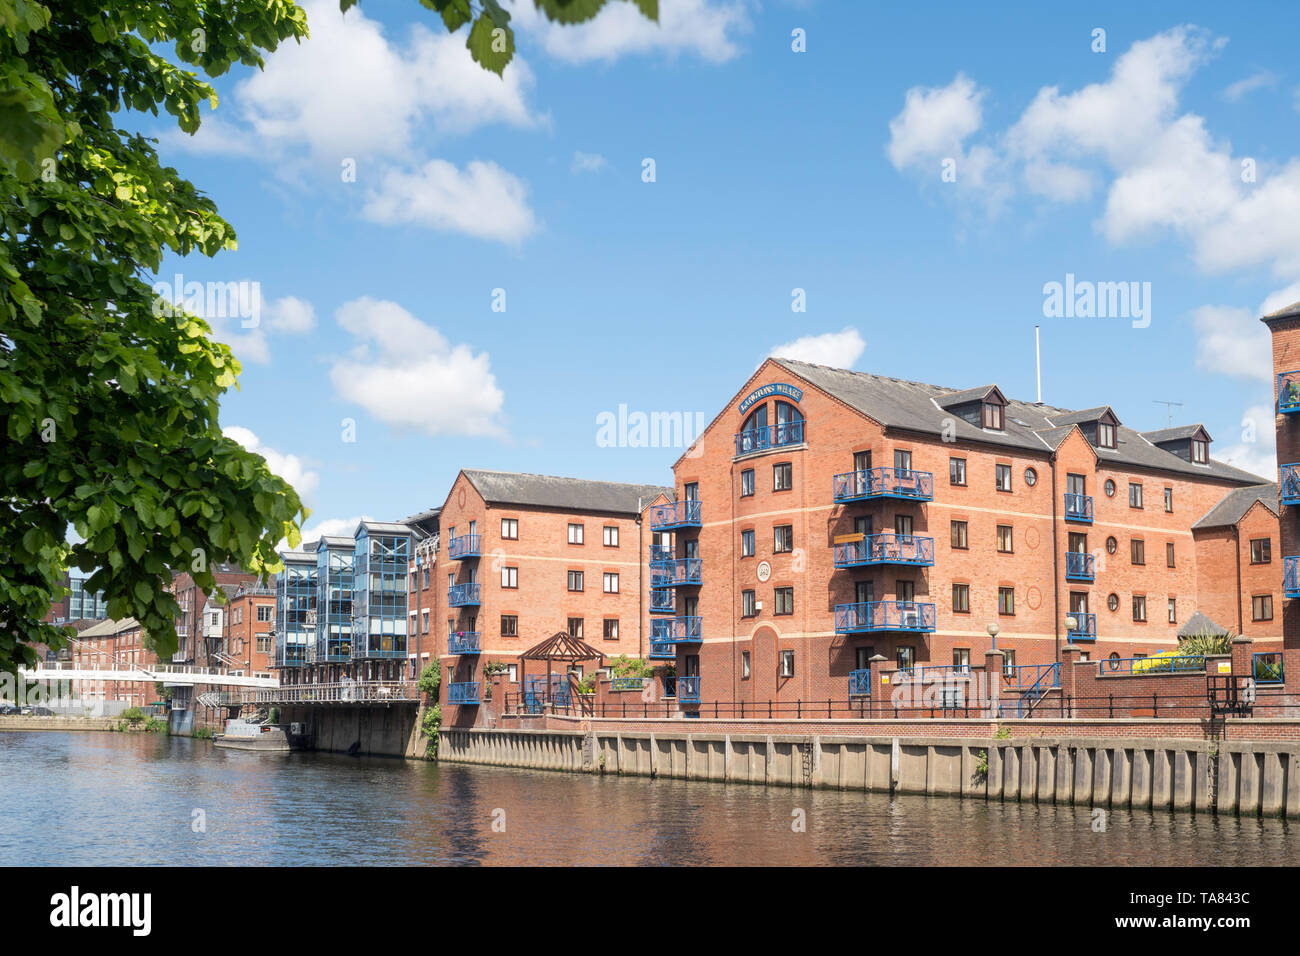 Langtons Wharf residential waterfront development on the river Aire in Leeds, Yorkshire, England, UK - Stock Image